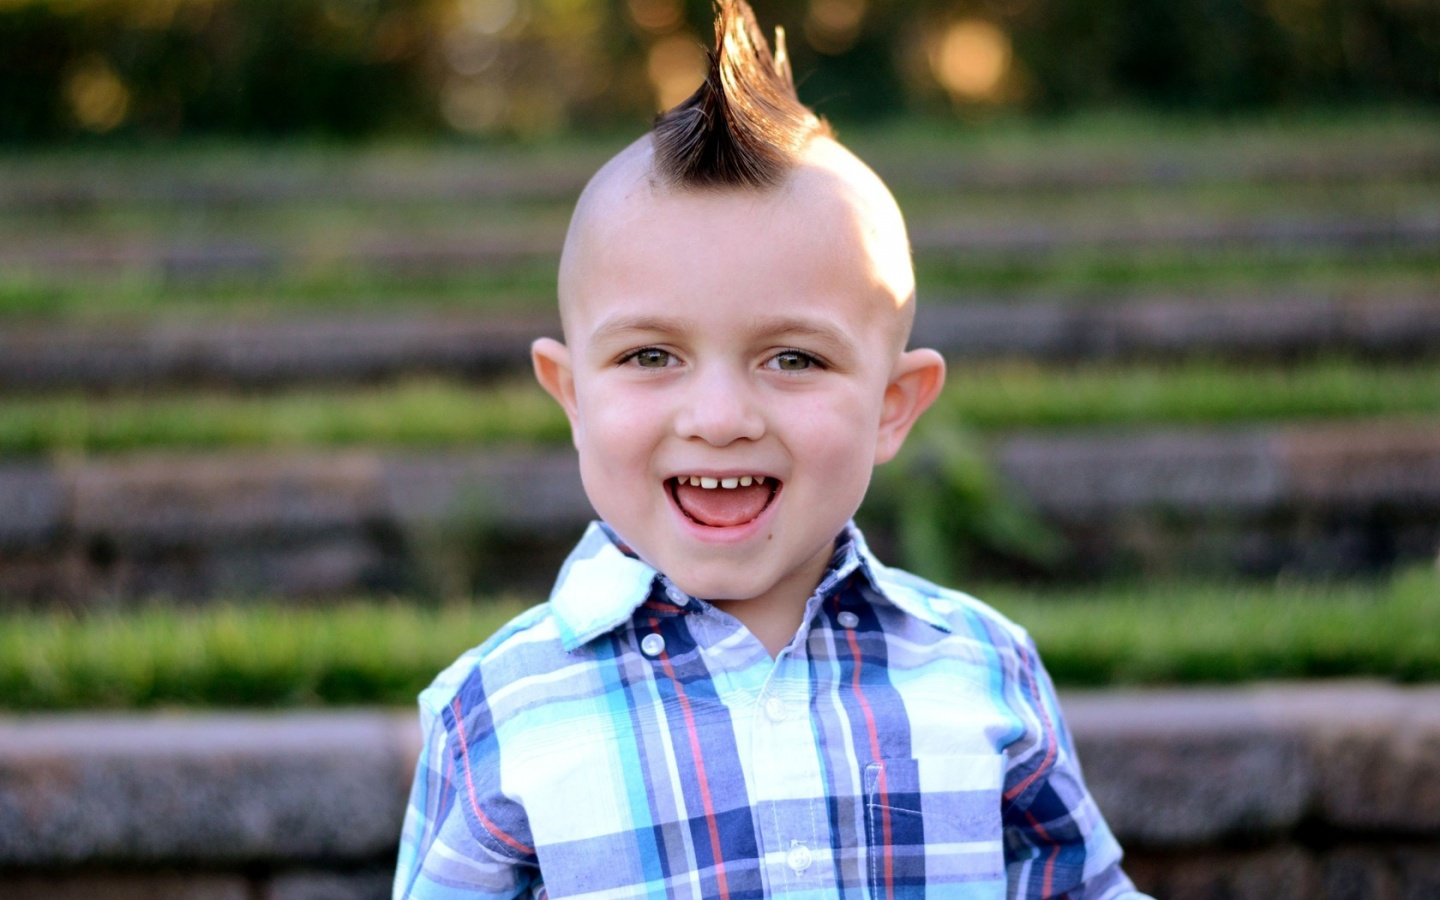 Galerry boy hairstyle image download